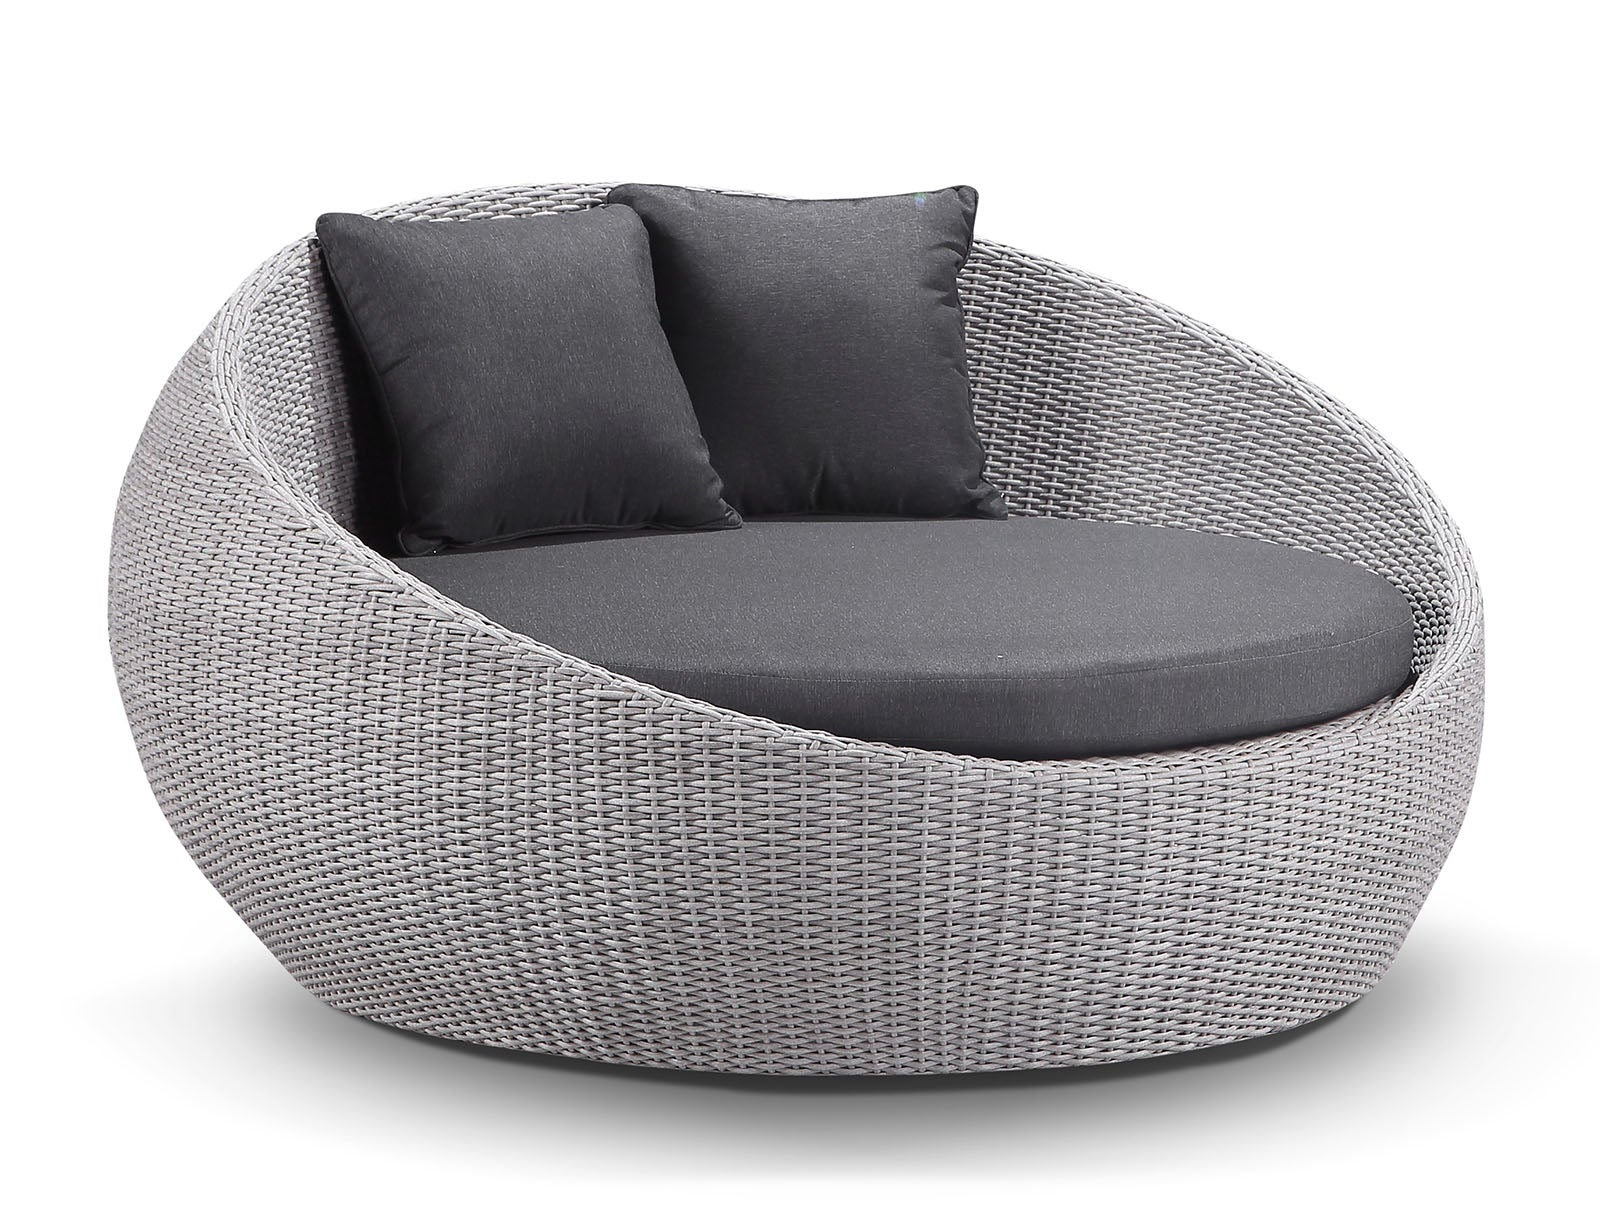 Newport Outdoor Round Wicker Daybed Without Canopy - Kimberly